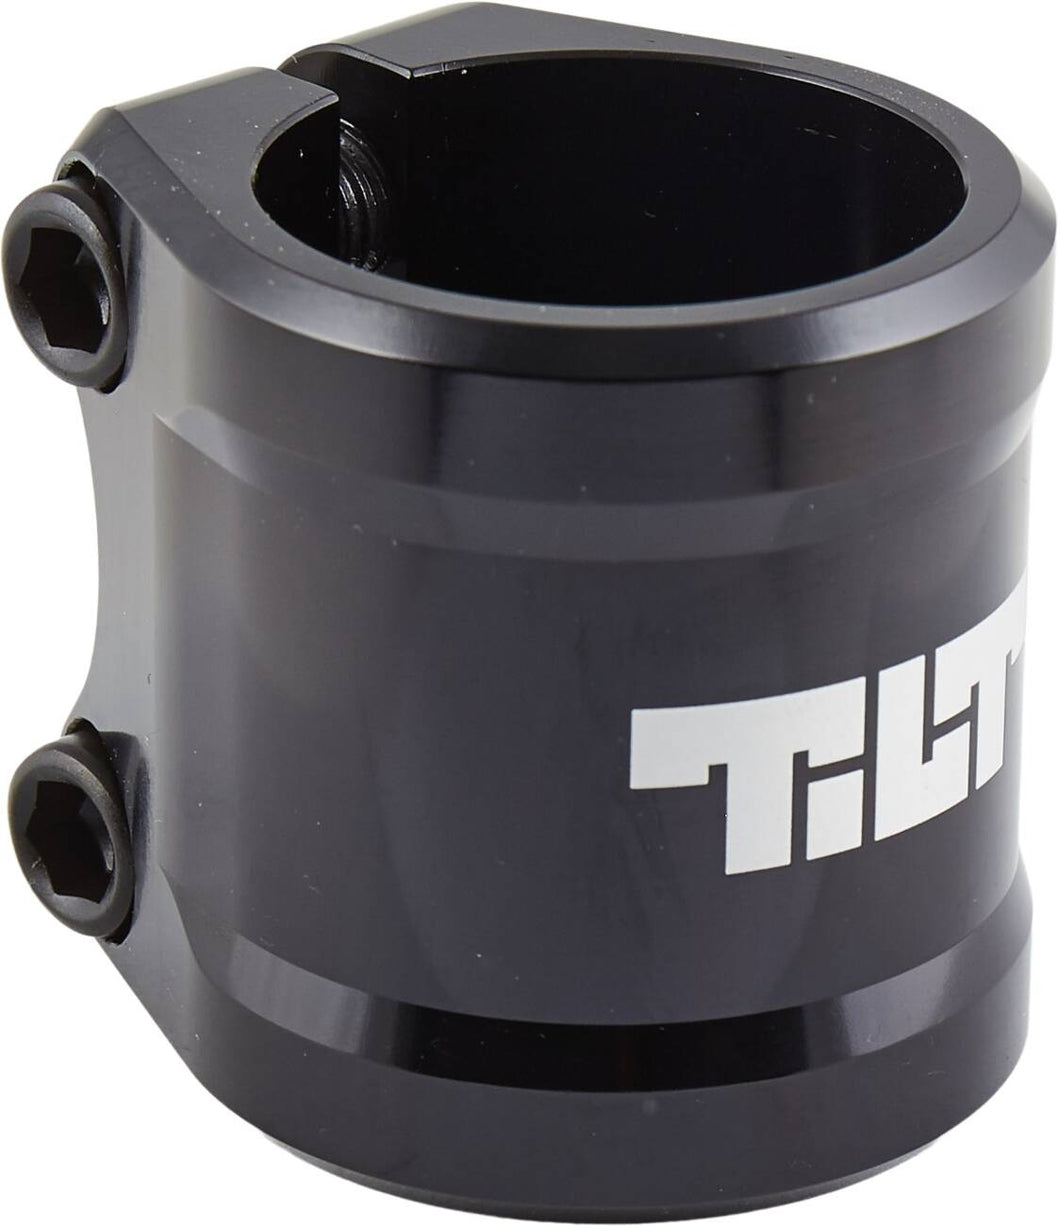 Tilt ARC Clamp Black